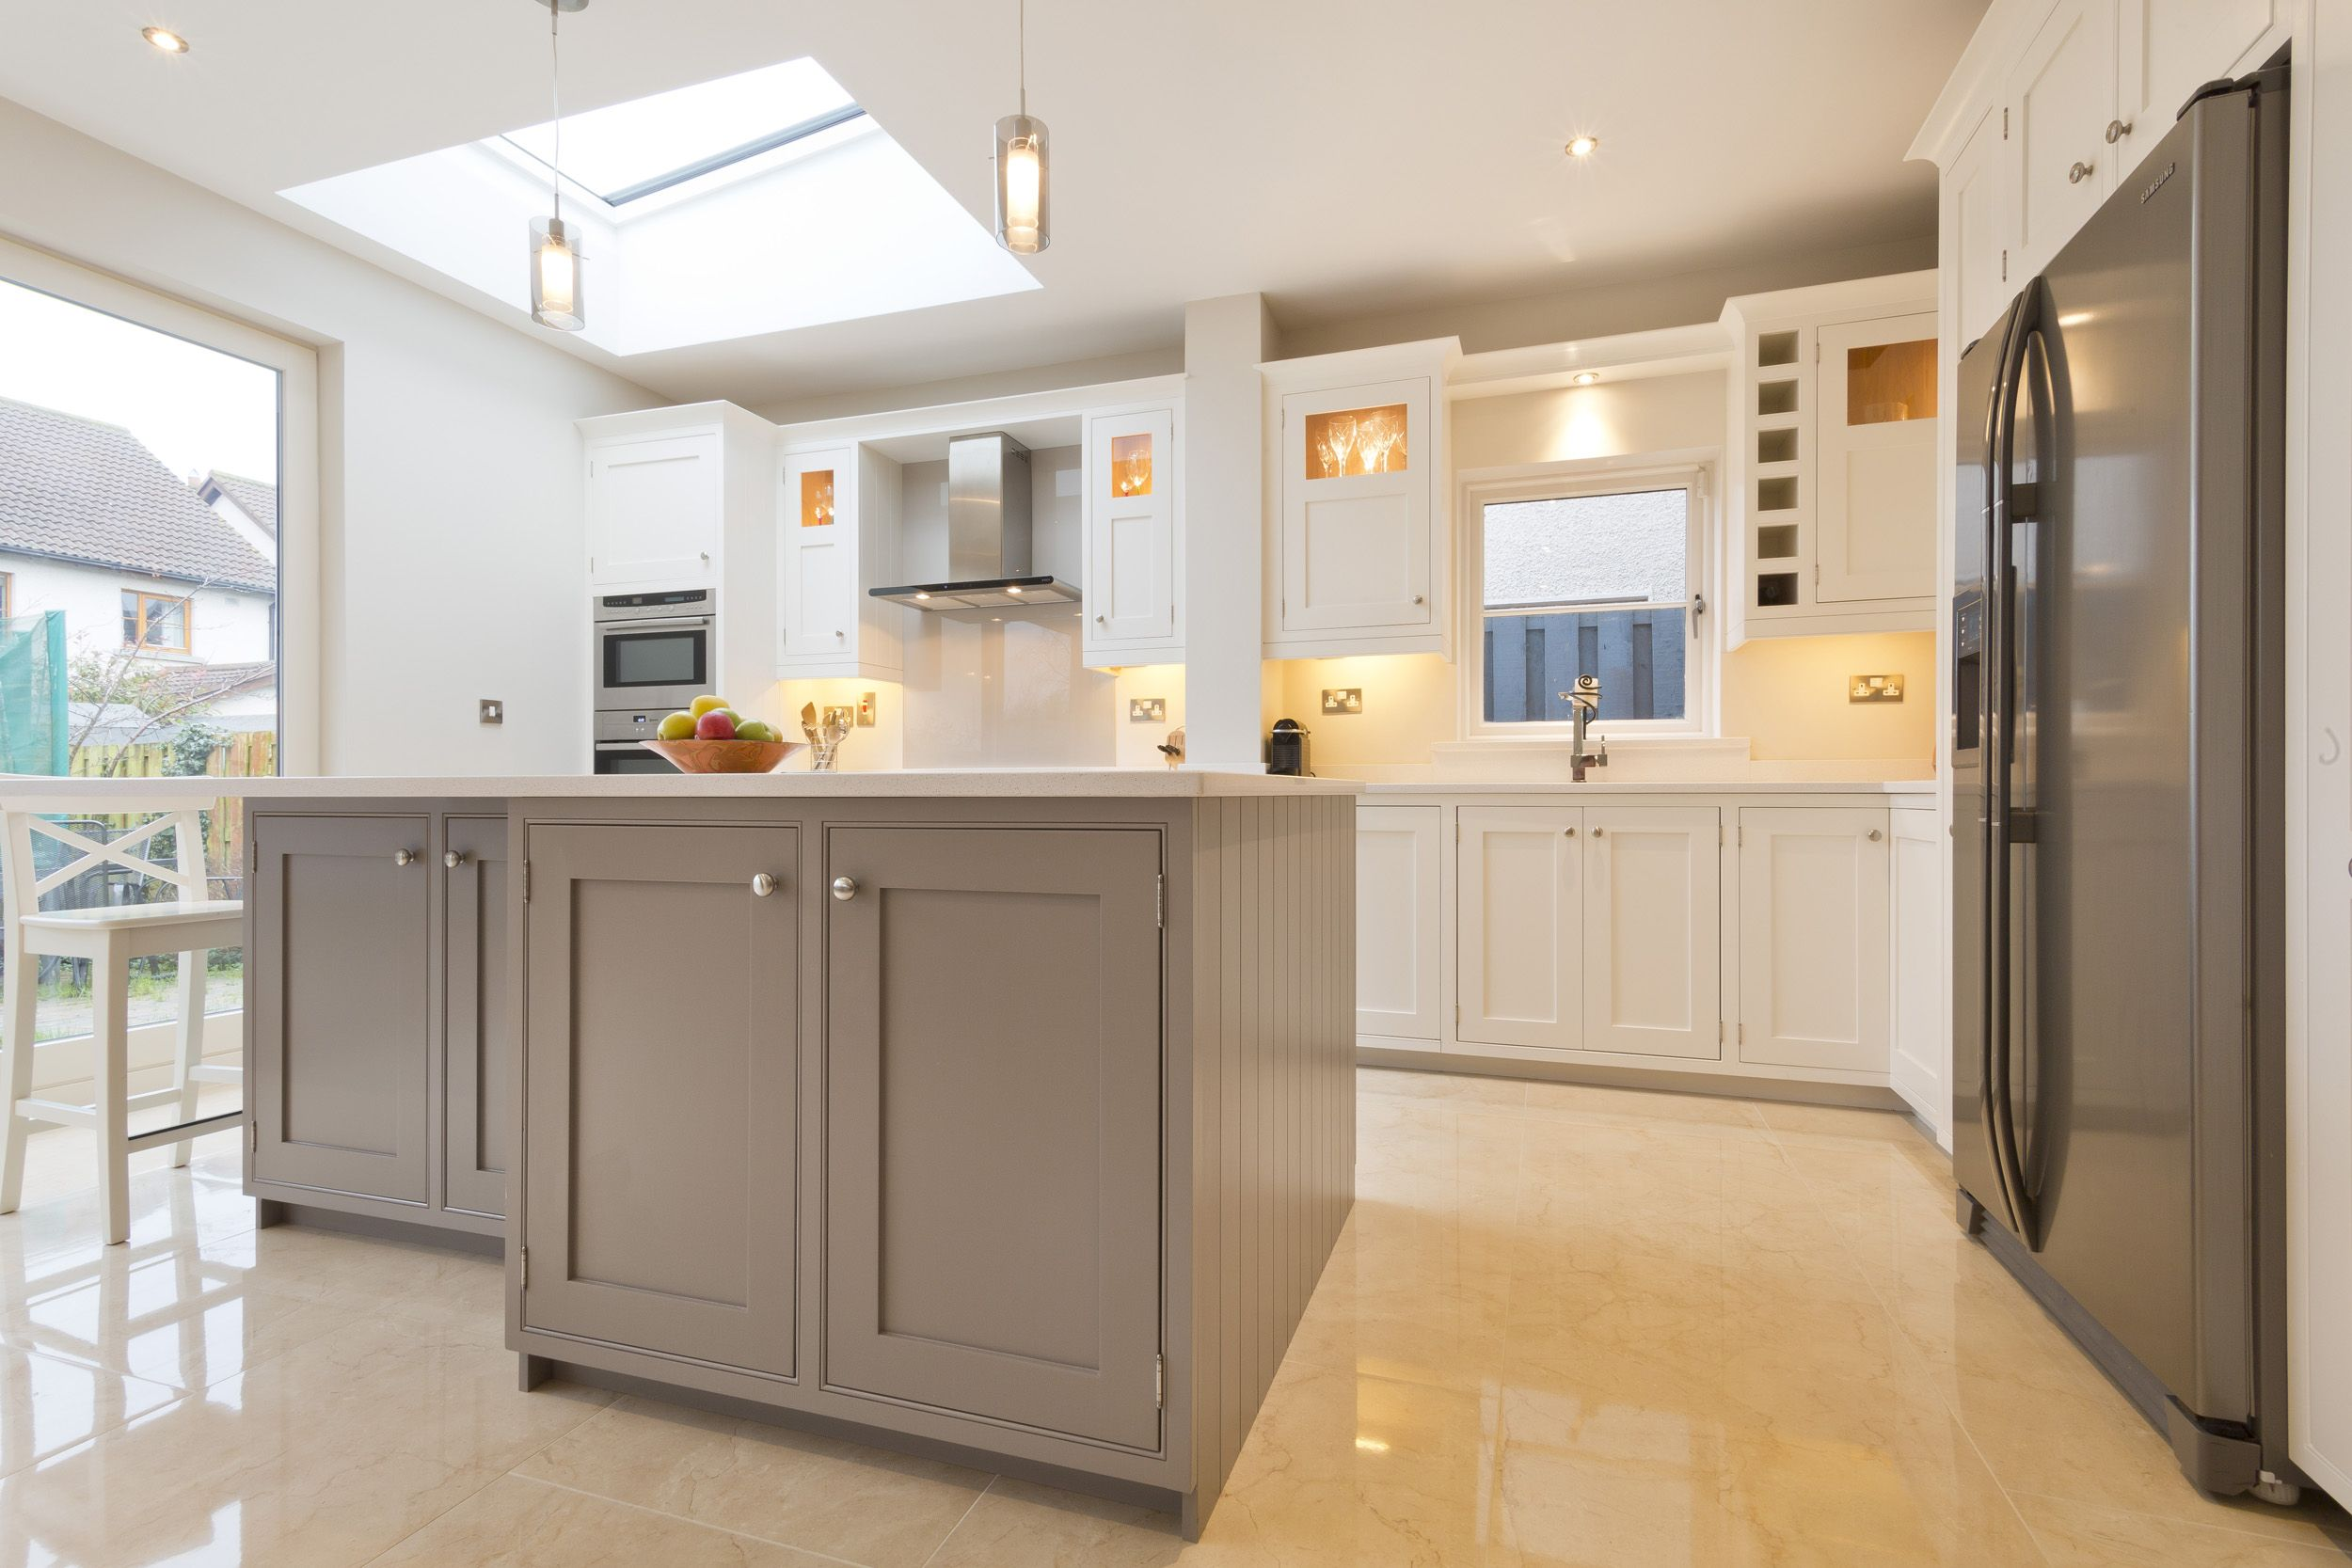 Strong White Farrow And Ball An In Frame Kitchen With A Shaker Door Painted In Strong